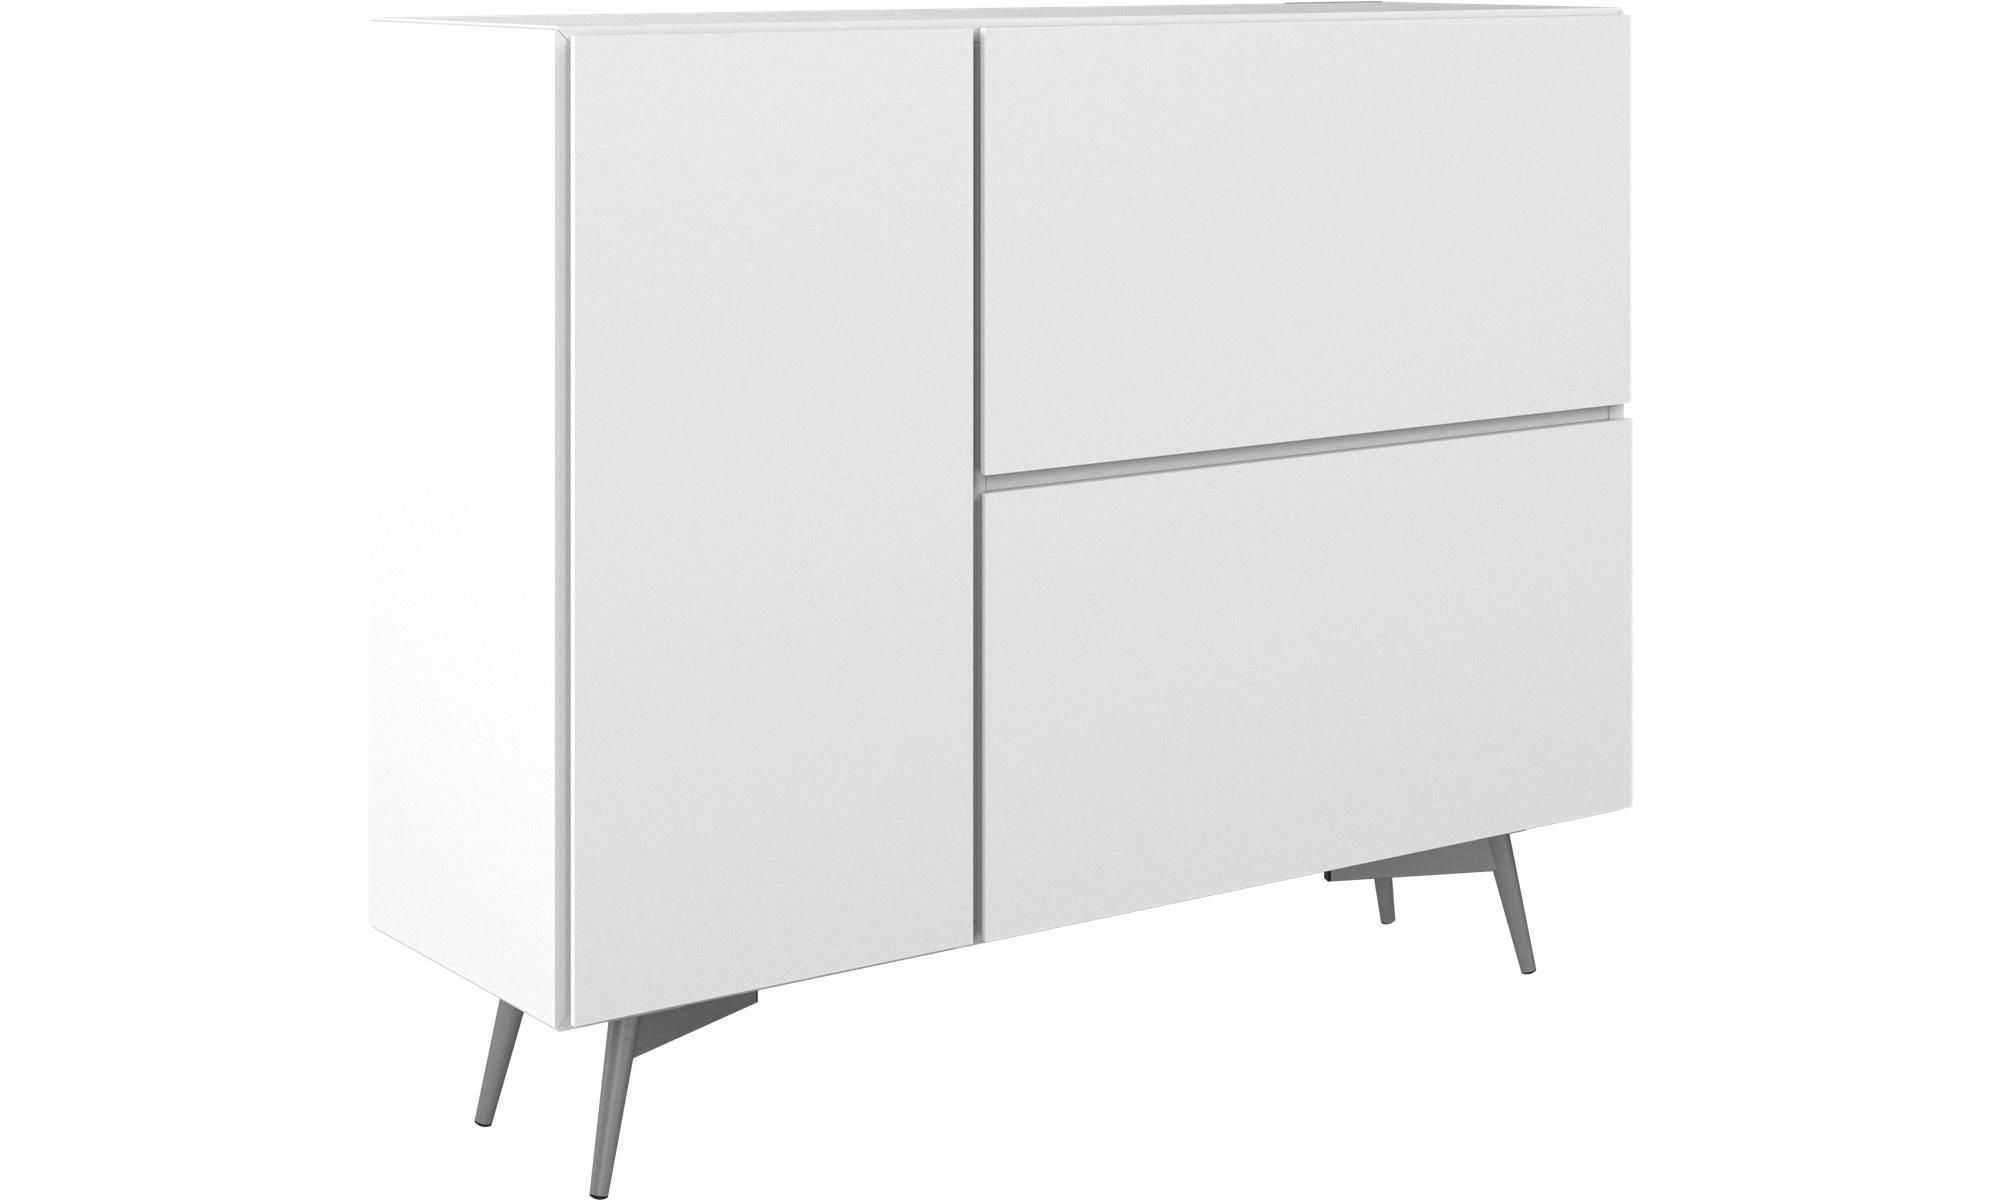 White Sideboards For Living Room Showcase Pictures India Lugano Highboard With Drop Down Doors And Drawer Lacquered